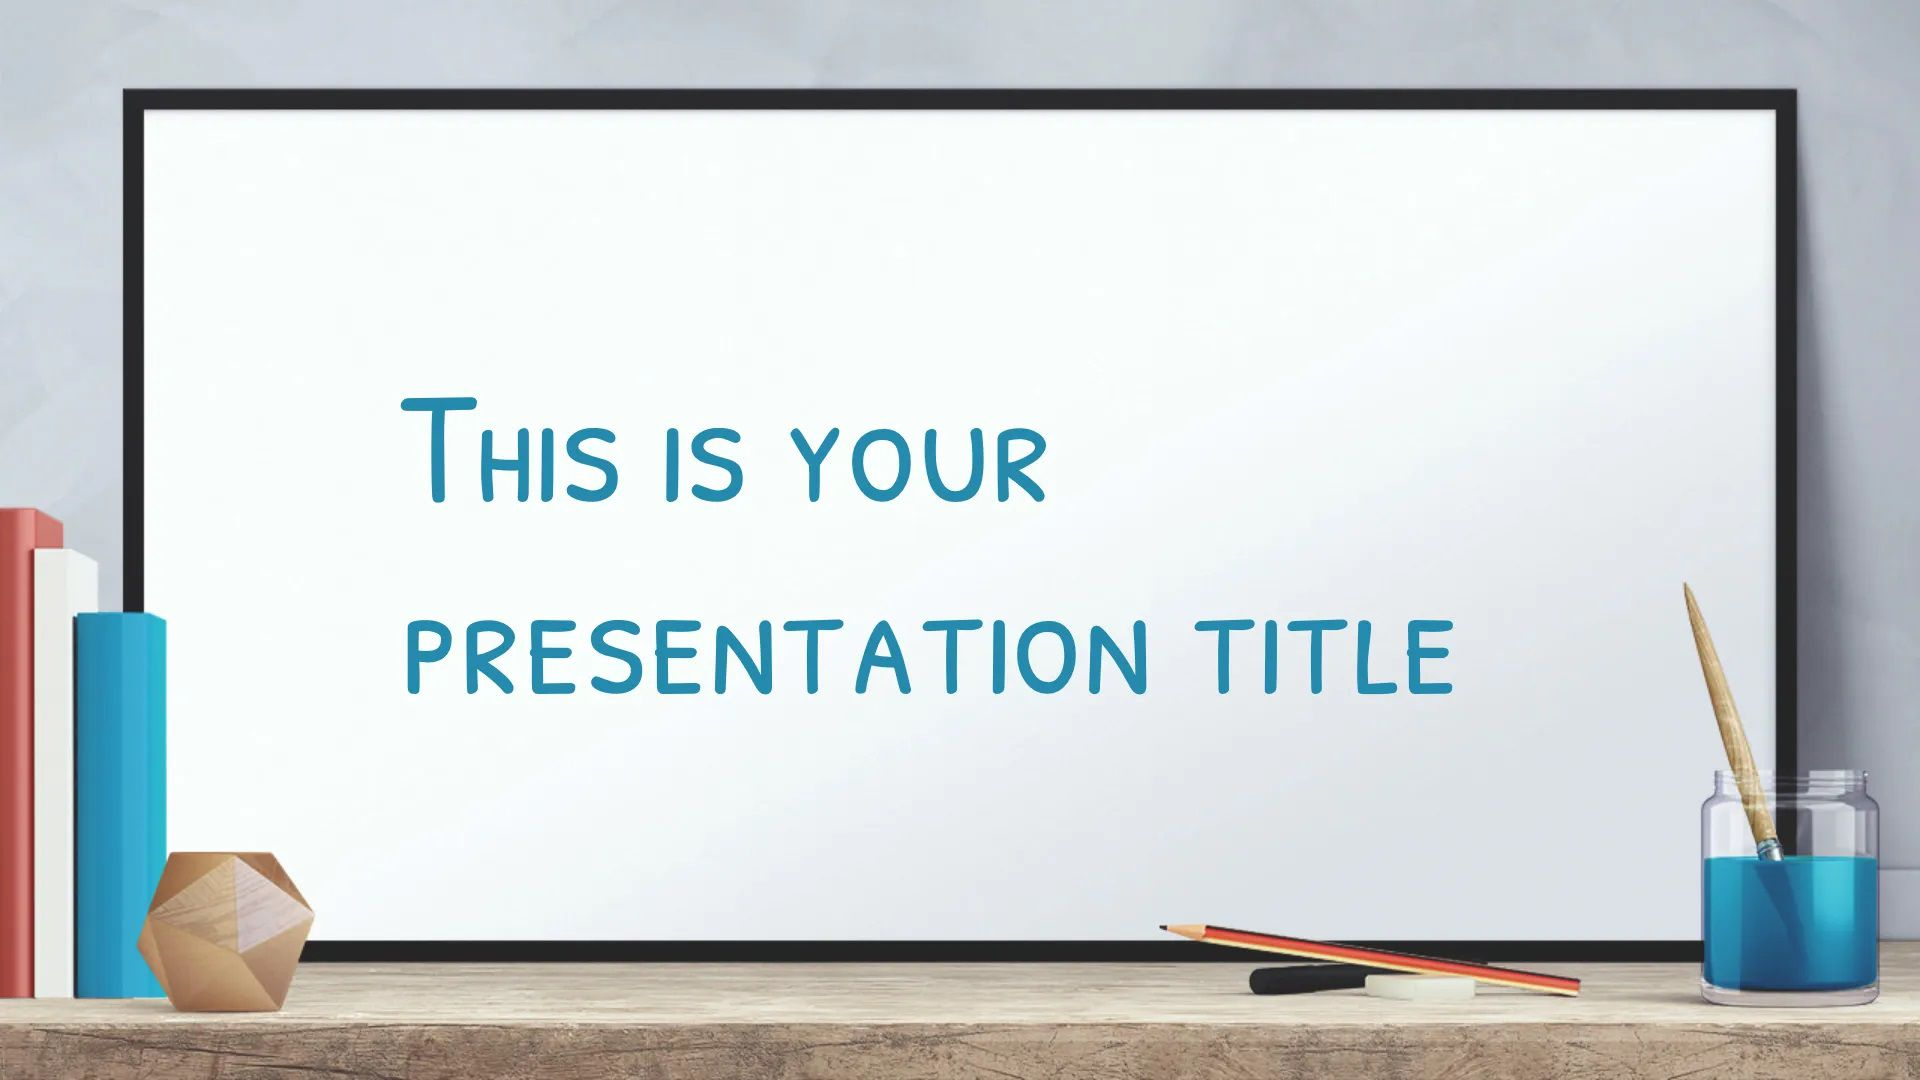 008 Archaicawful Free Education Powerpoint Template Photo  Templates Physical Download Downloadable For Teacher DesignFull